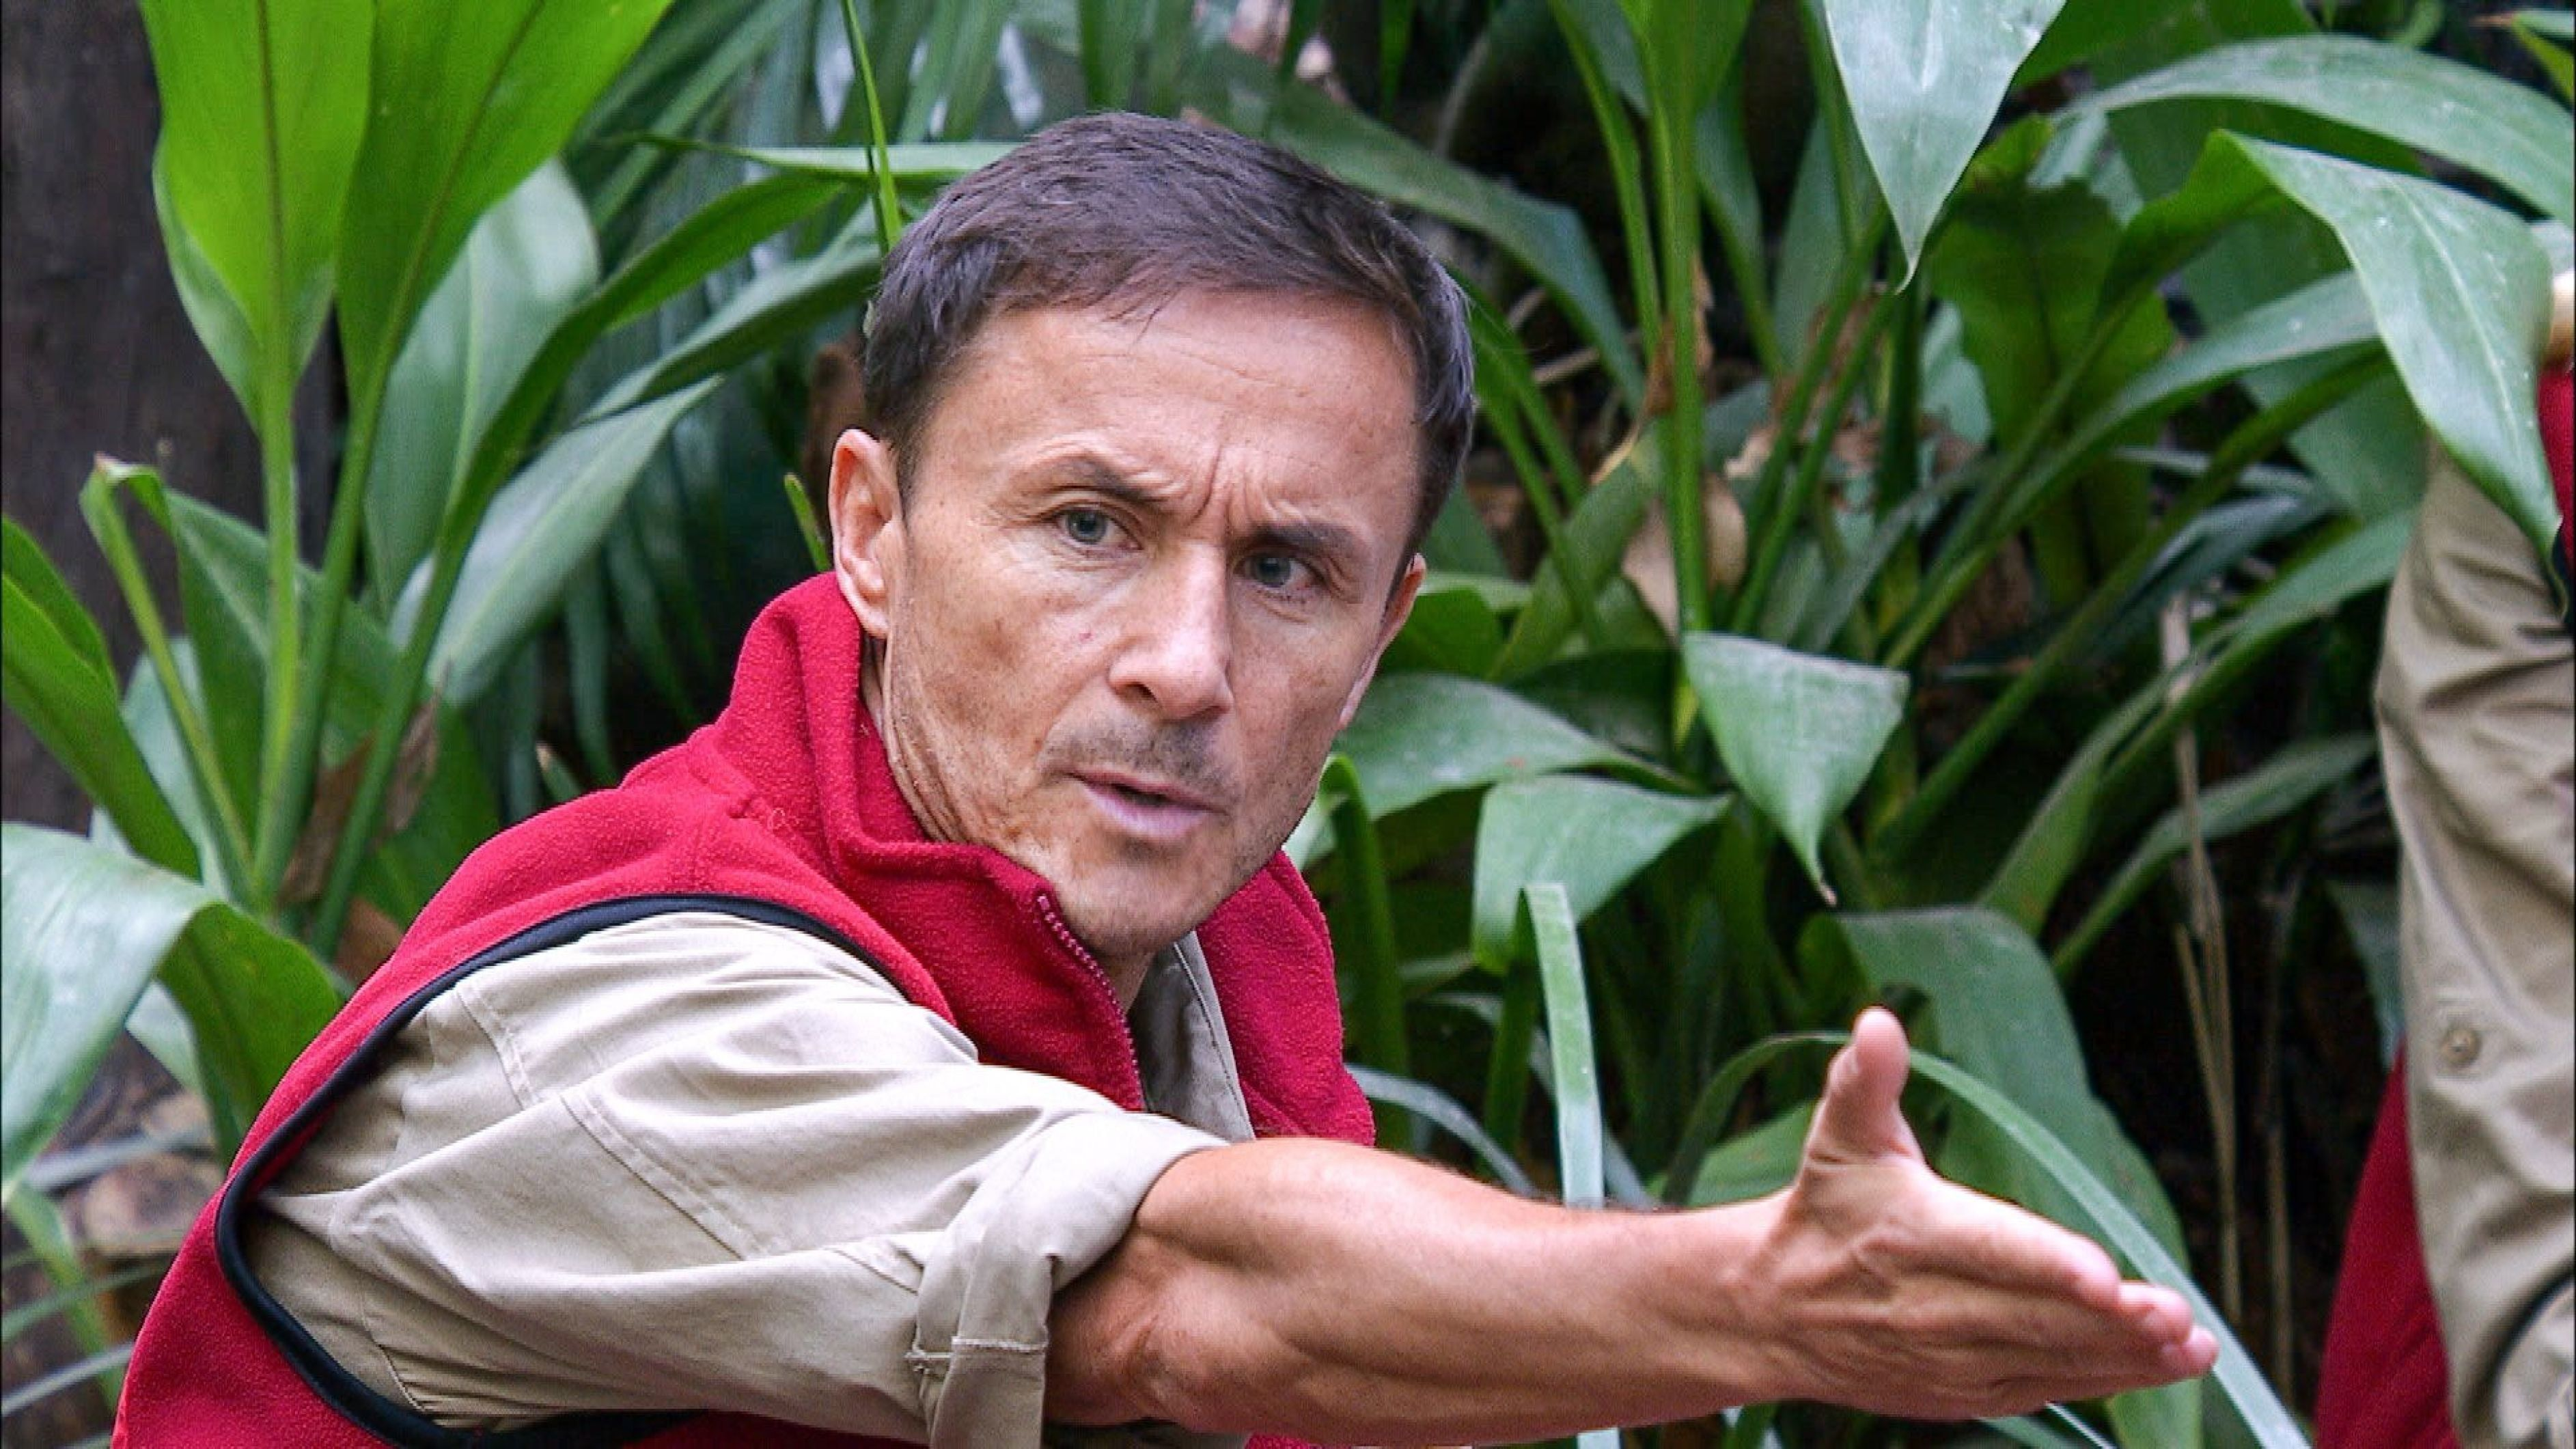 'I'm A Celebrity' Fans Call For Dennis Wise To Be Removed Over Iain Lee Bullying